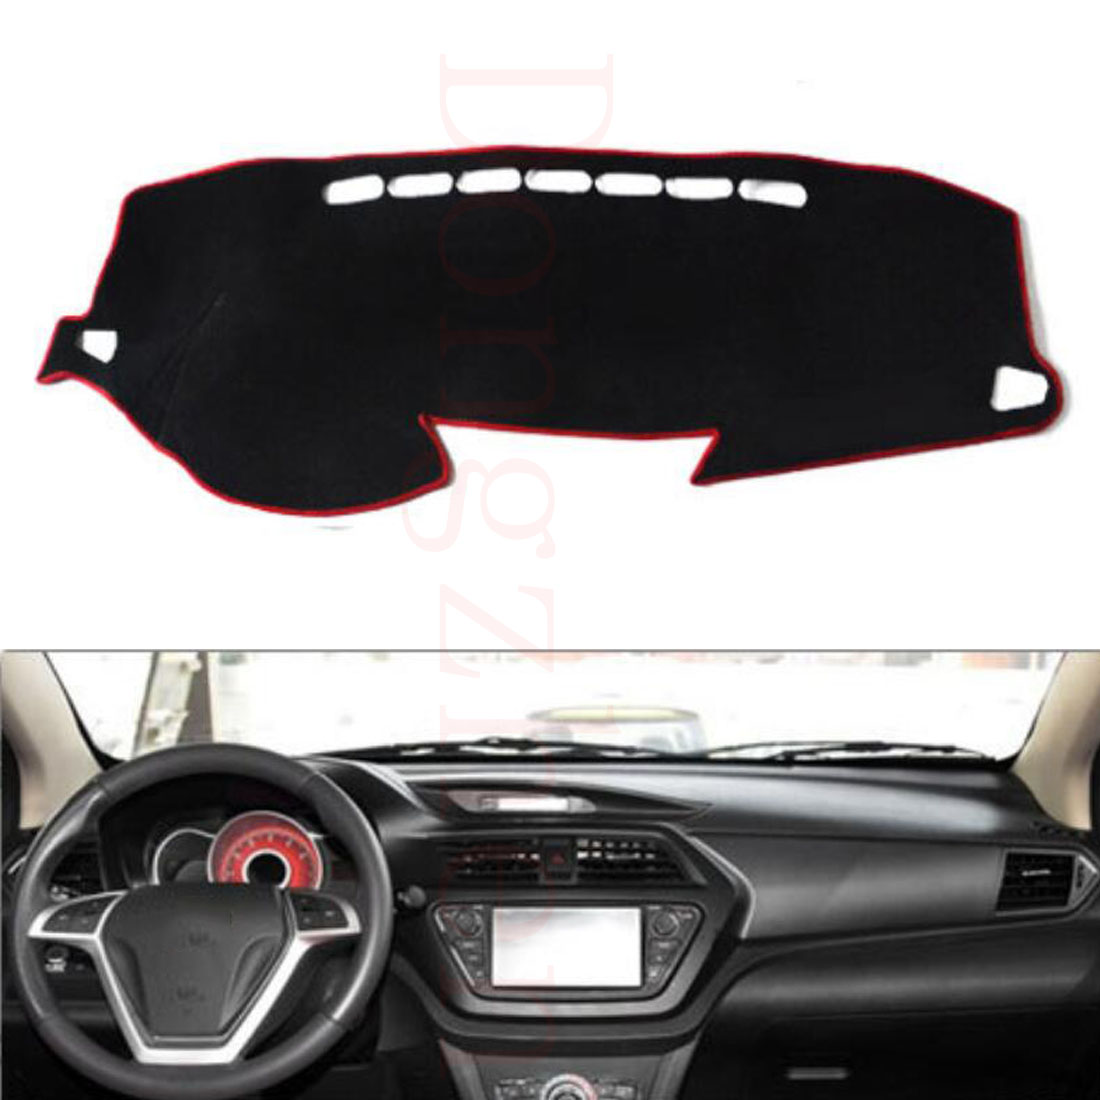 Dongzhen Fit For Lifan X50 Car Dashboard Cover Avoid Light Pad Instrument Platform Dash Board Cover Car Styling